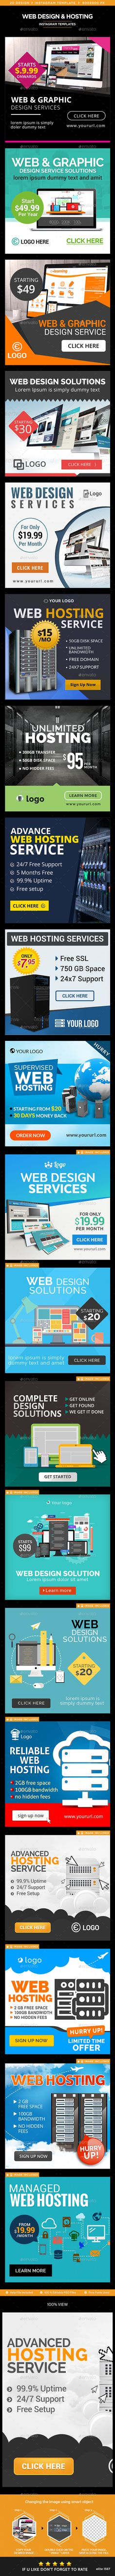 Web Design Hosting Instagram Template 20 Design Template Psd Download Here Http